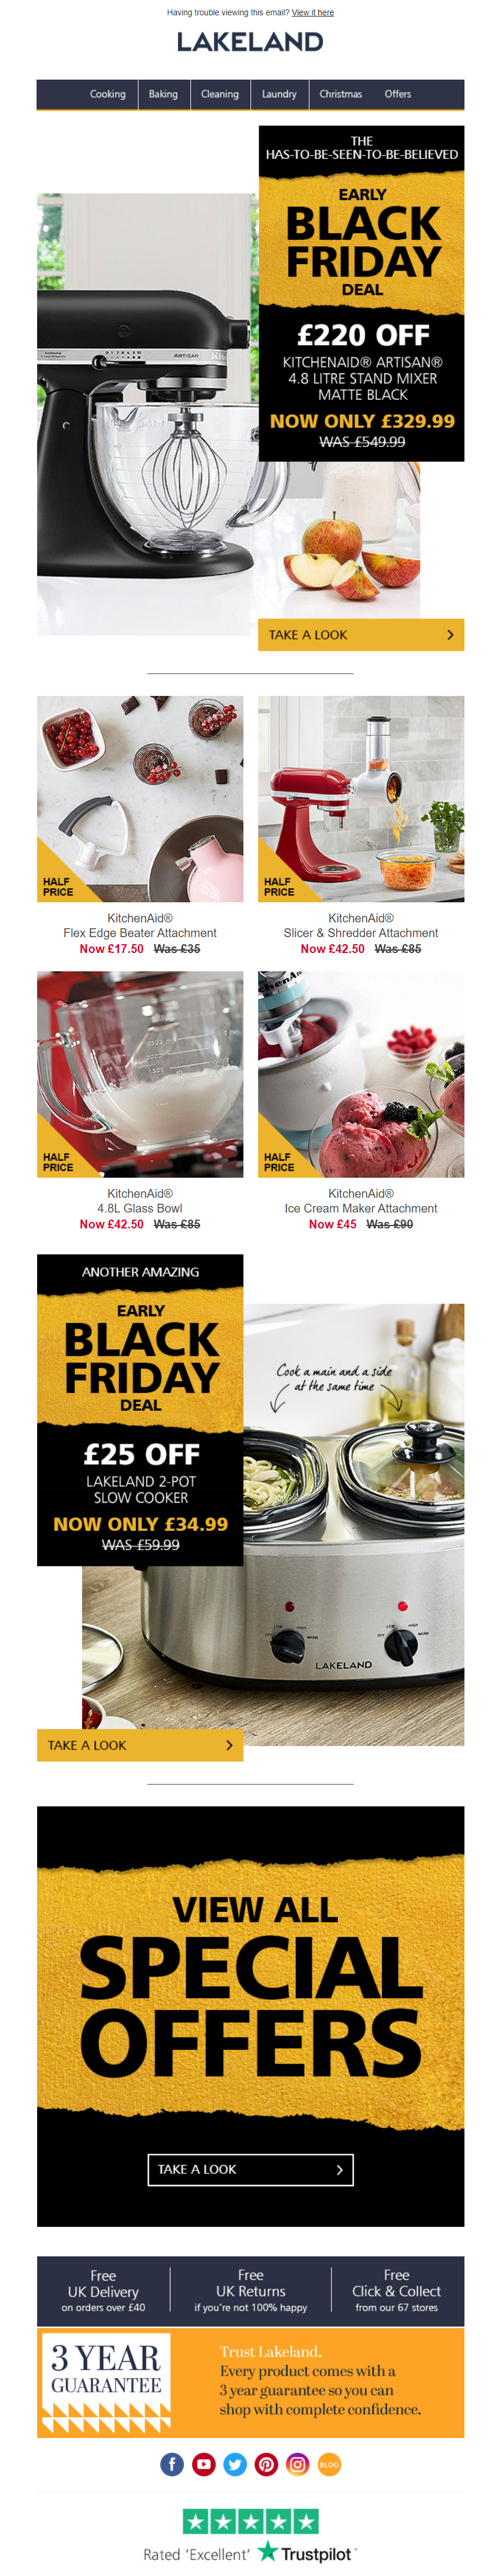 Black Friday Deal Email From Lakeland Emailmarketing Email Marketing Home Retail Blackfriday Deals Black Friday Deals Black Friday Black Friday Email